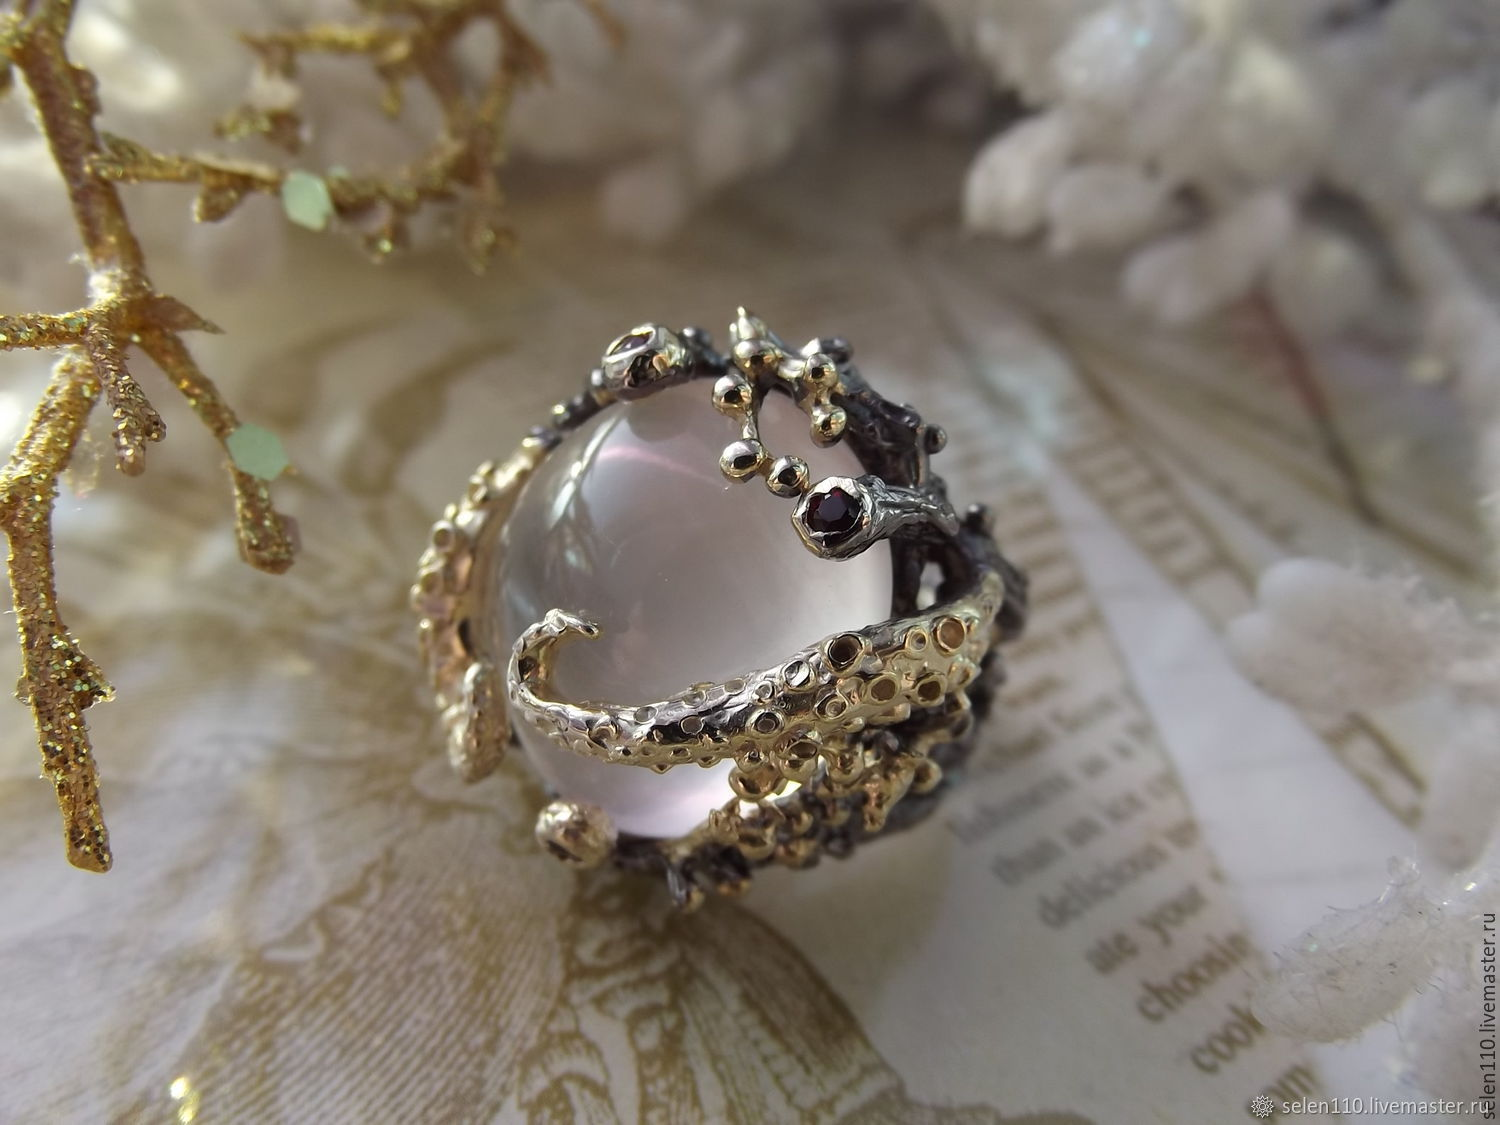 Foam Bay ring with rose quartz and garnets, Rings, Voronezh,  Фото №1